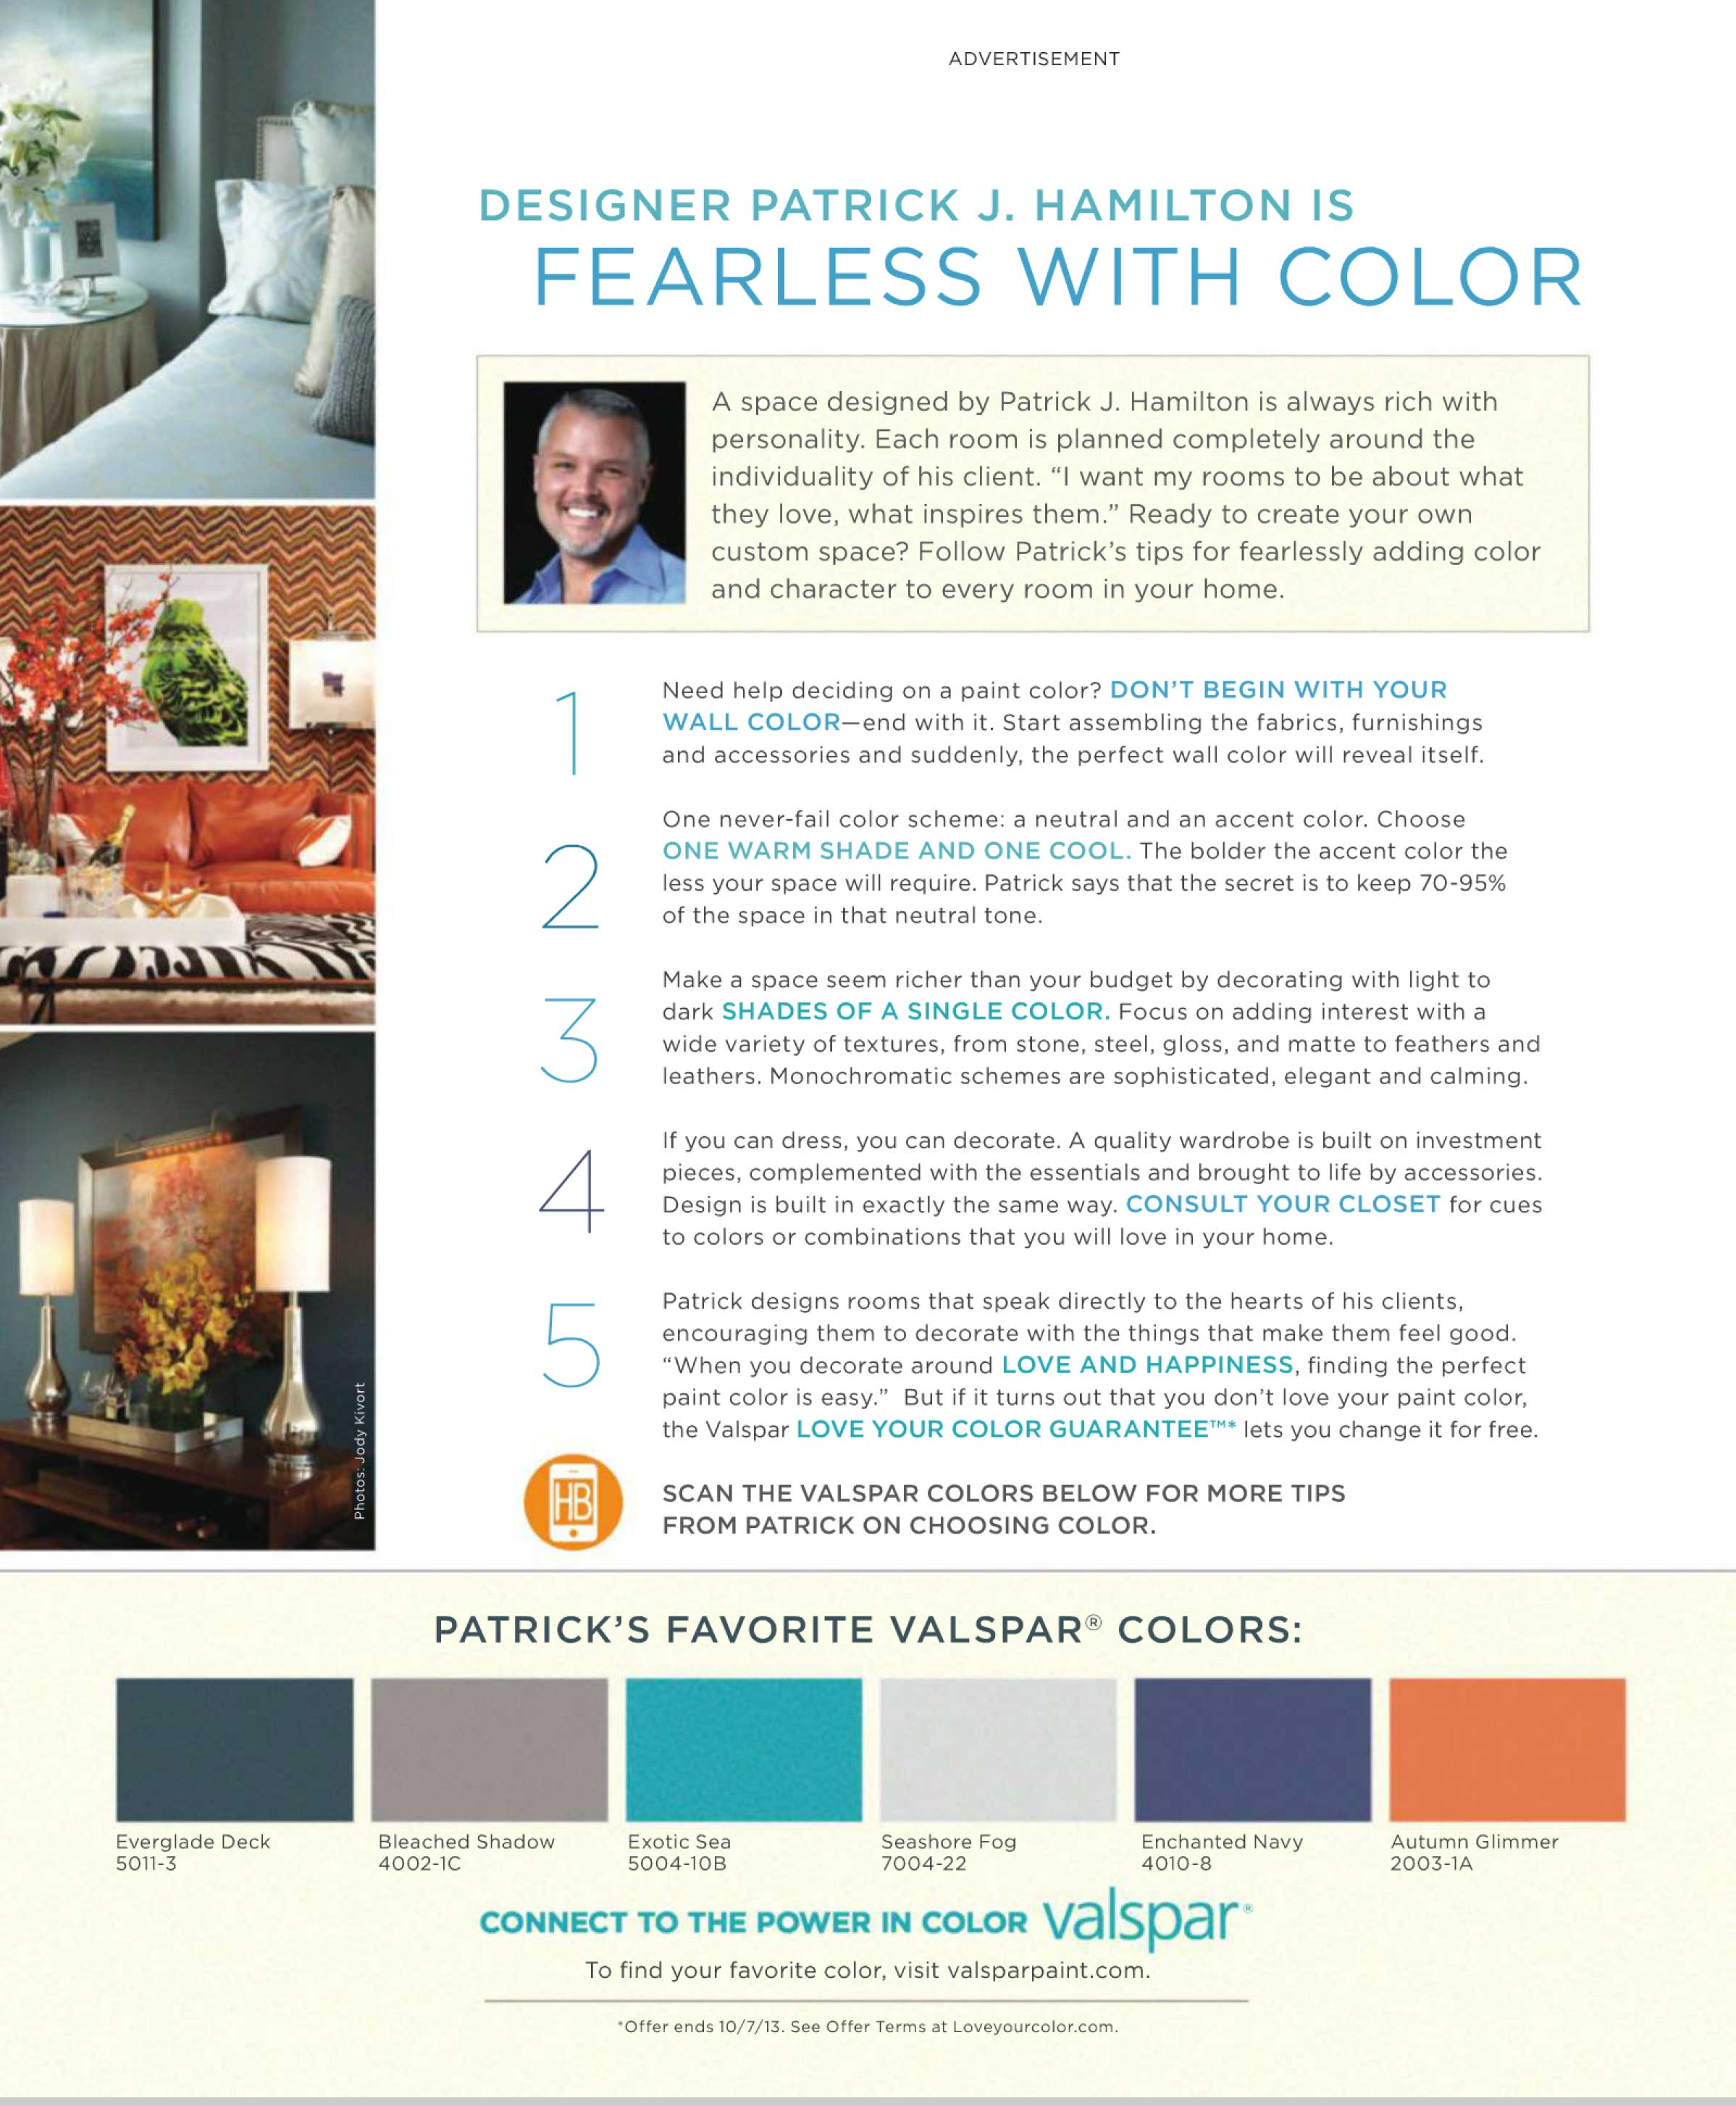 Designer Patrick Hamilton is fearless with color